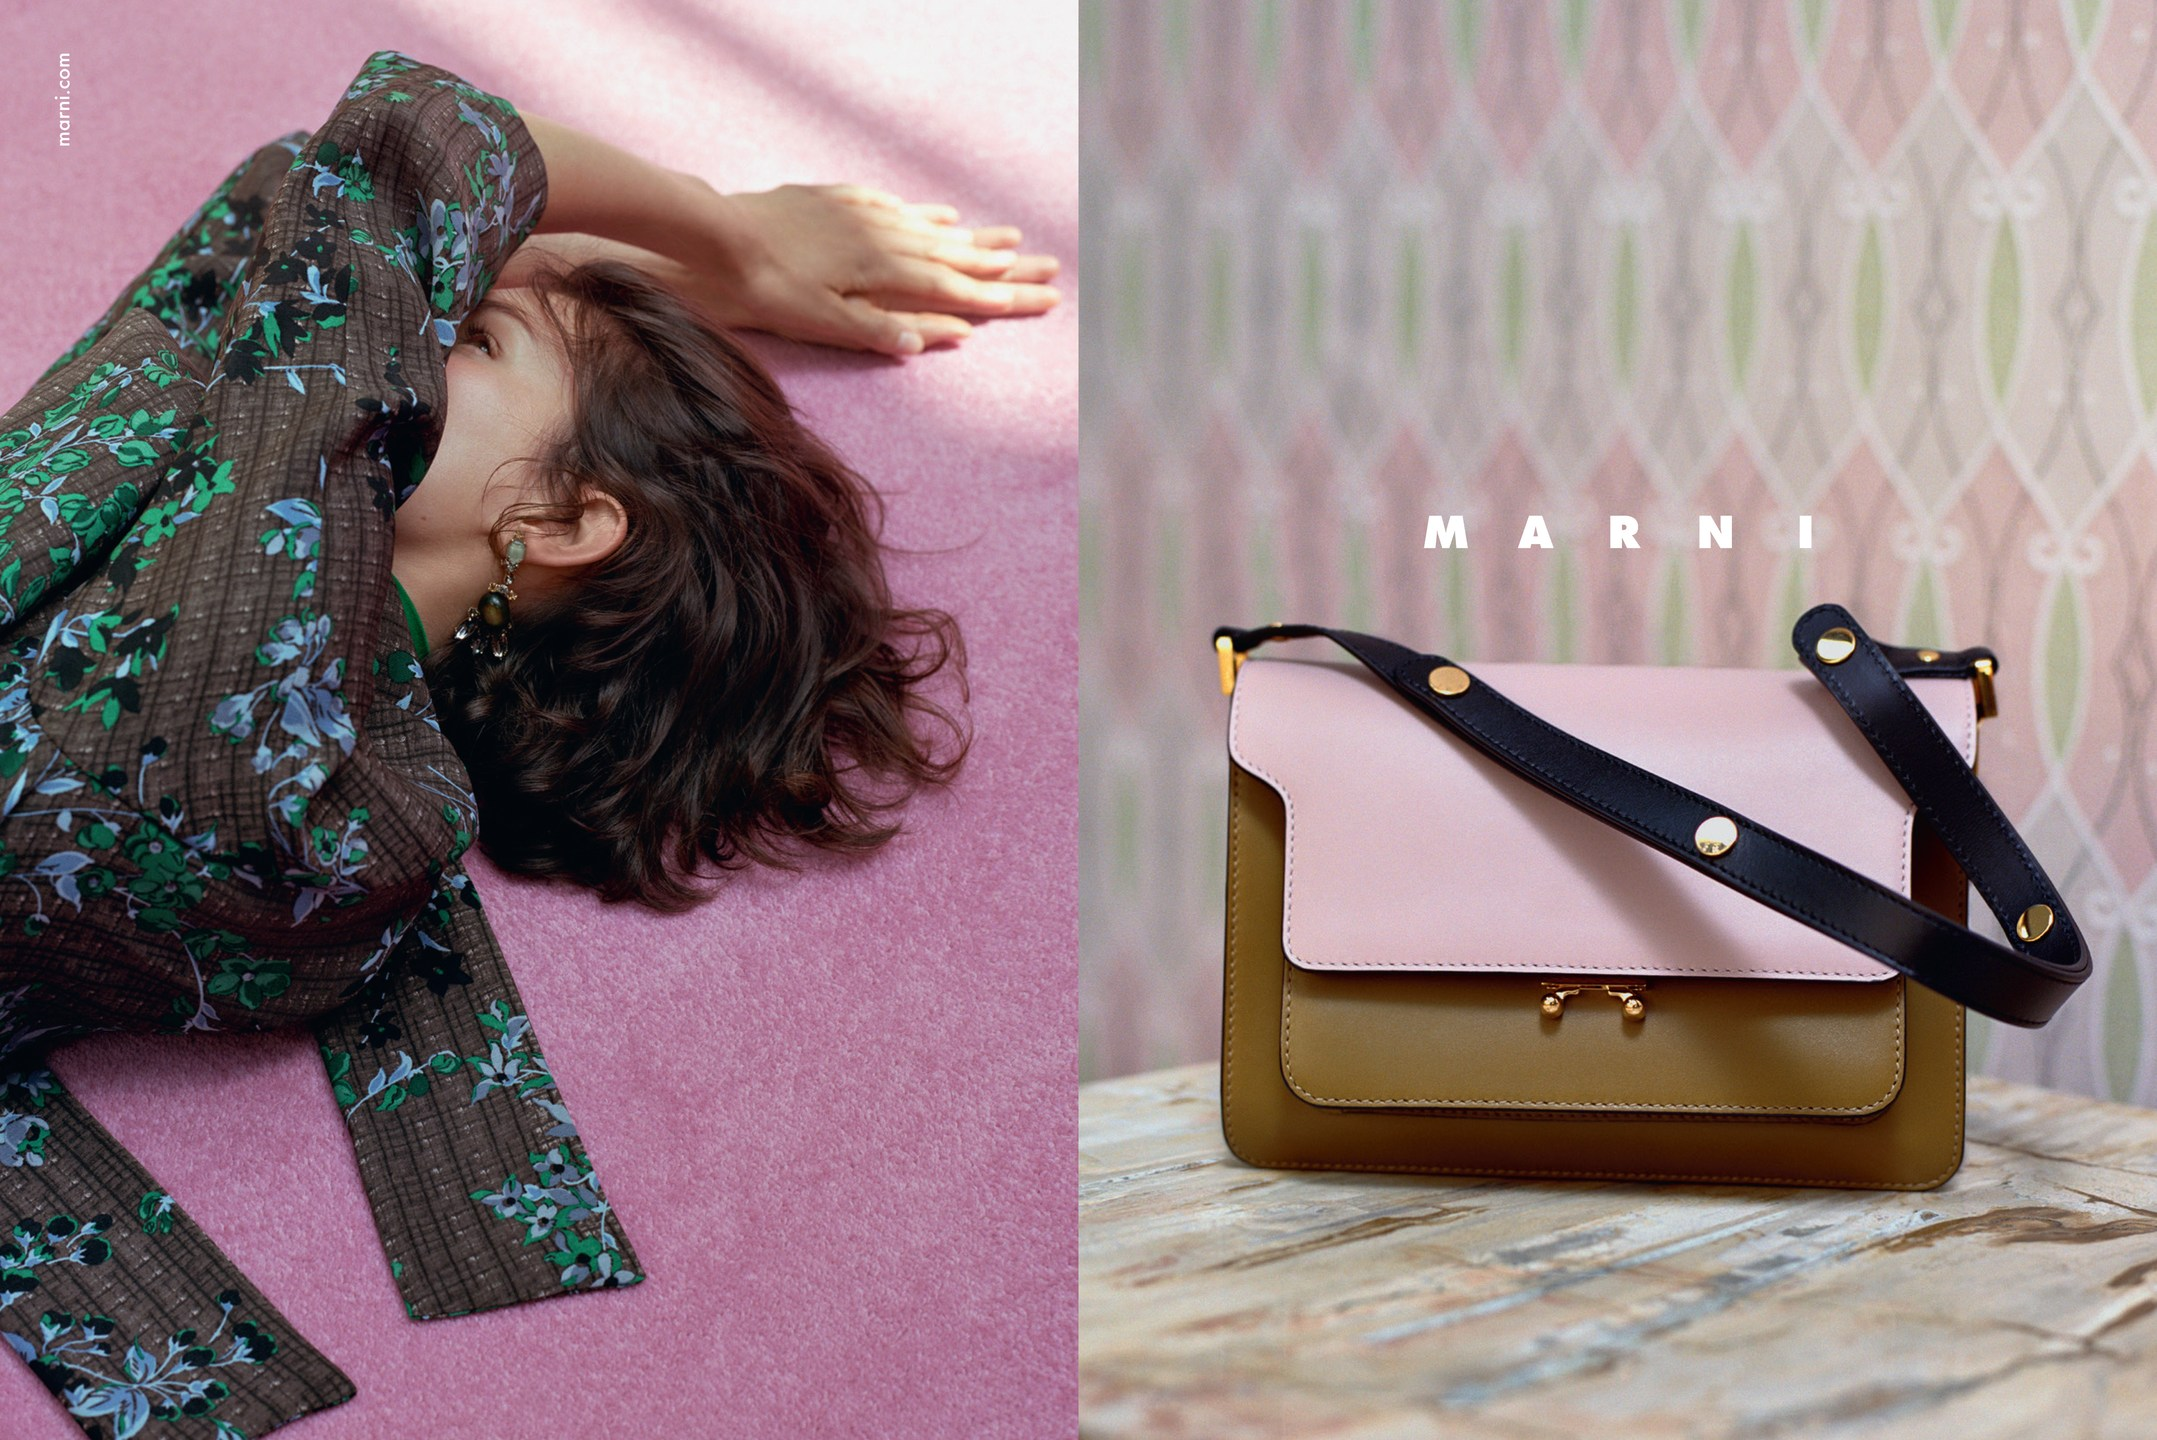 marte-mei-van-haaster-by-jackie-nickerson-for-marni-fall-winter-2015-2016-6